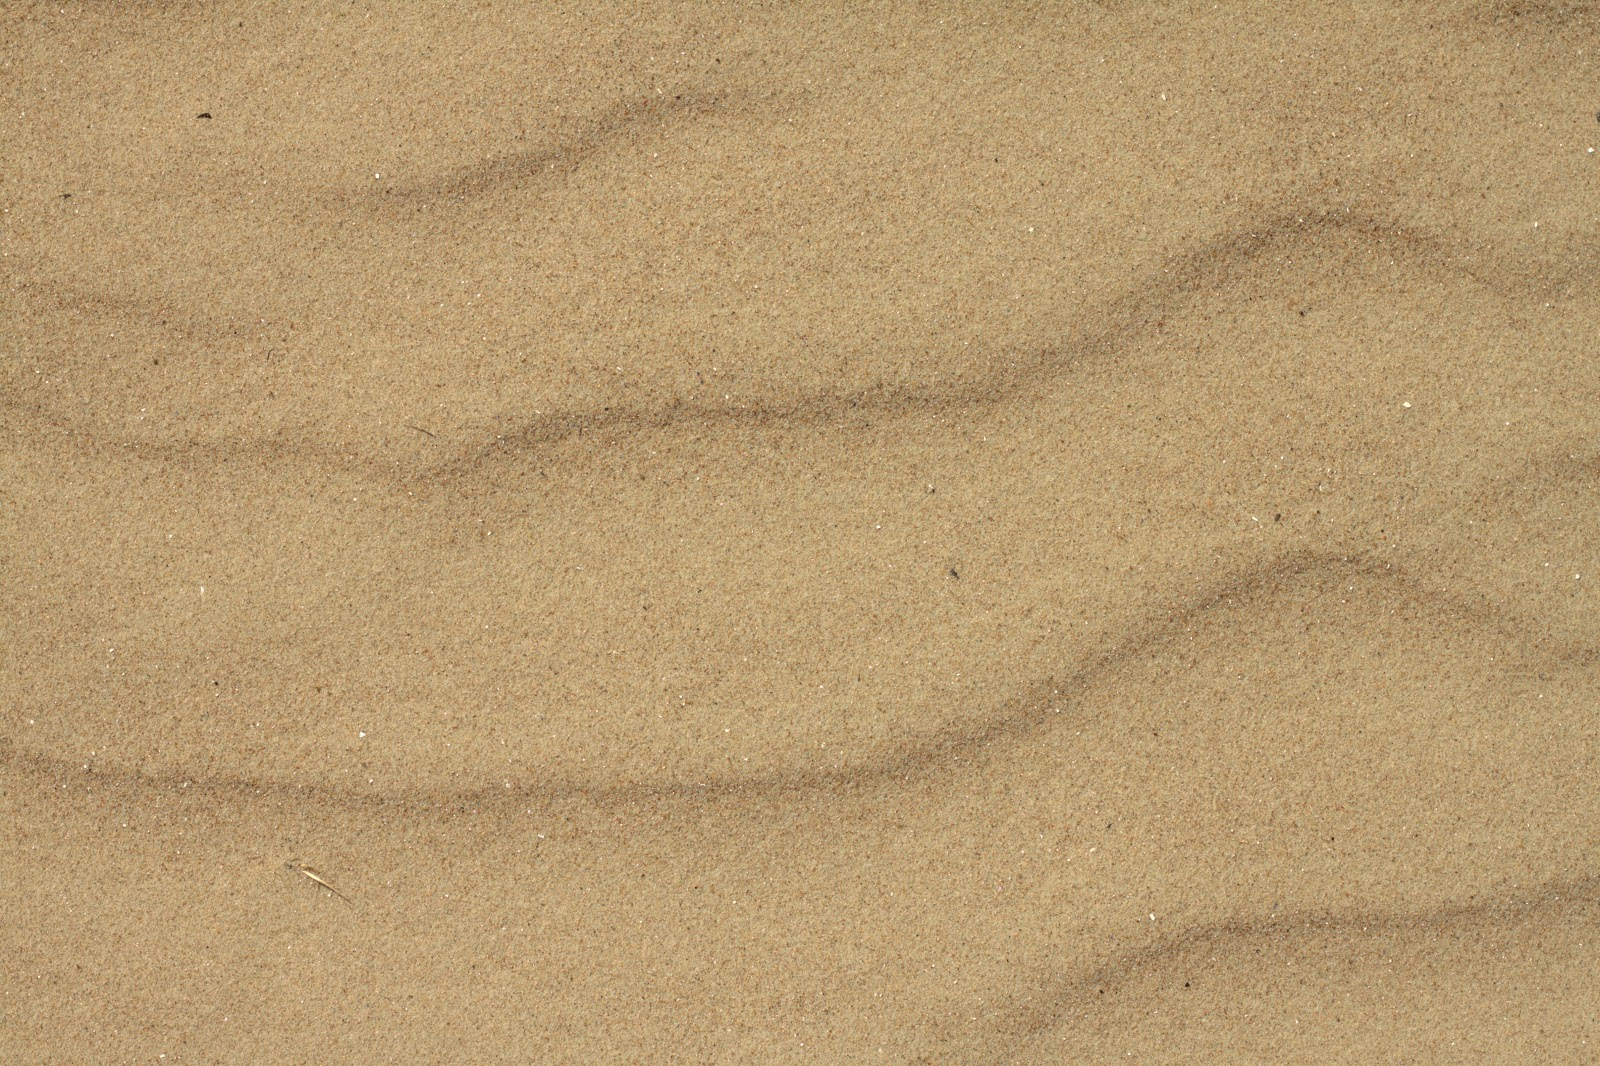 Sand Beach Soil Ground Shore Desert Texture Ver 1